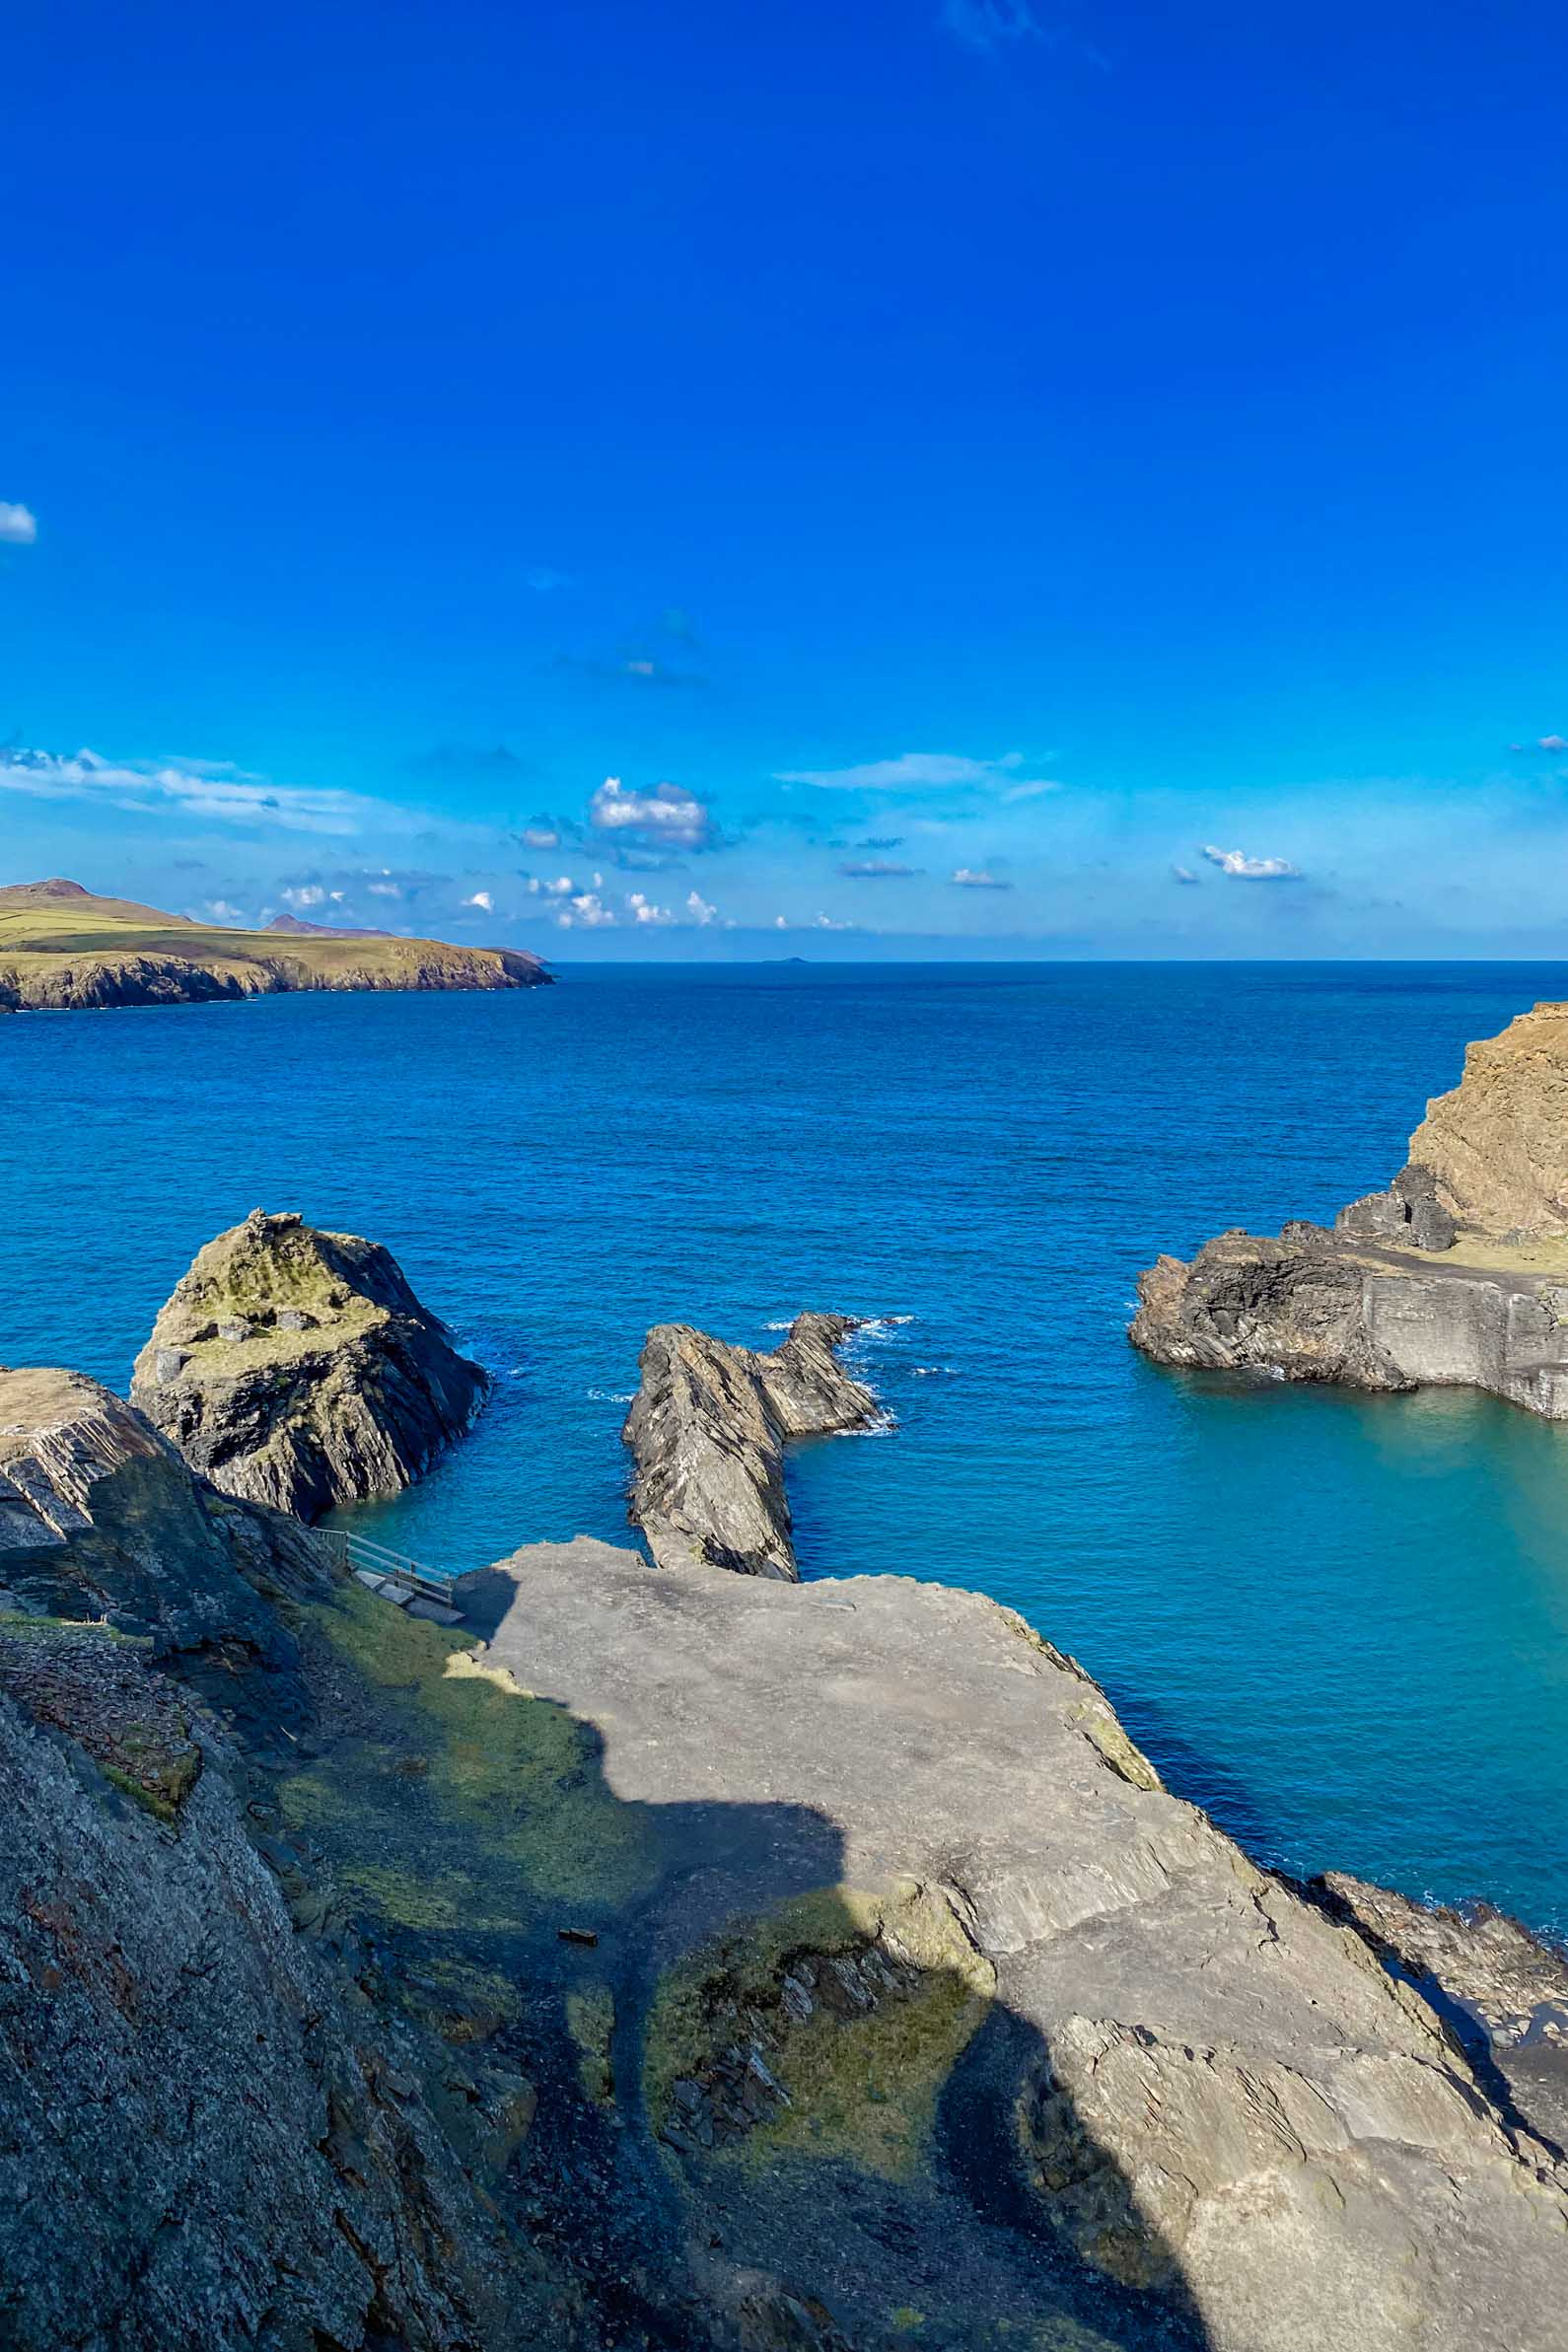 A complete guide to the Pembrokeshire Coast National Park, Wales - the best places to visit in Pembrokeshire